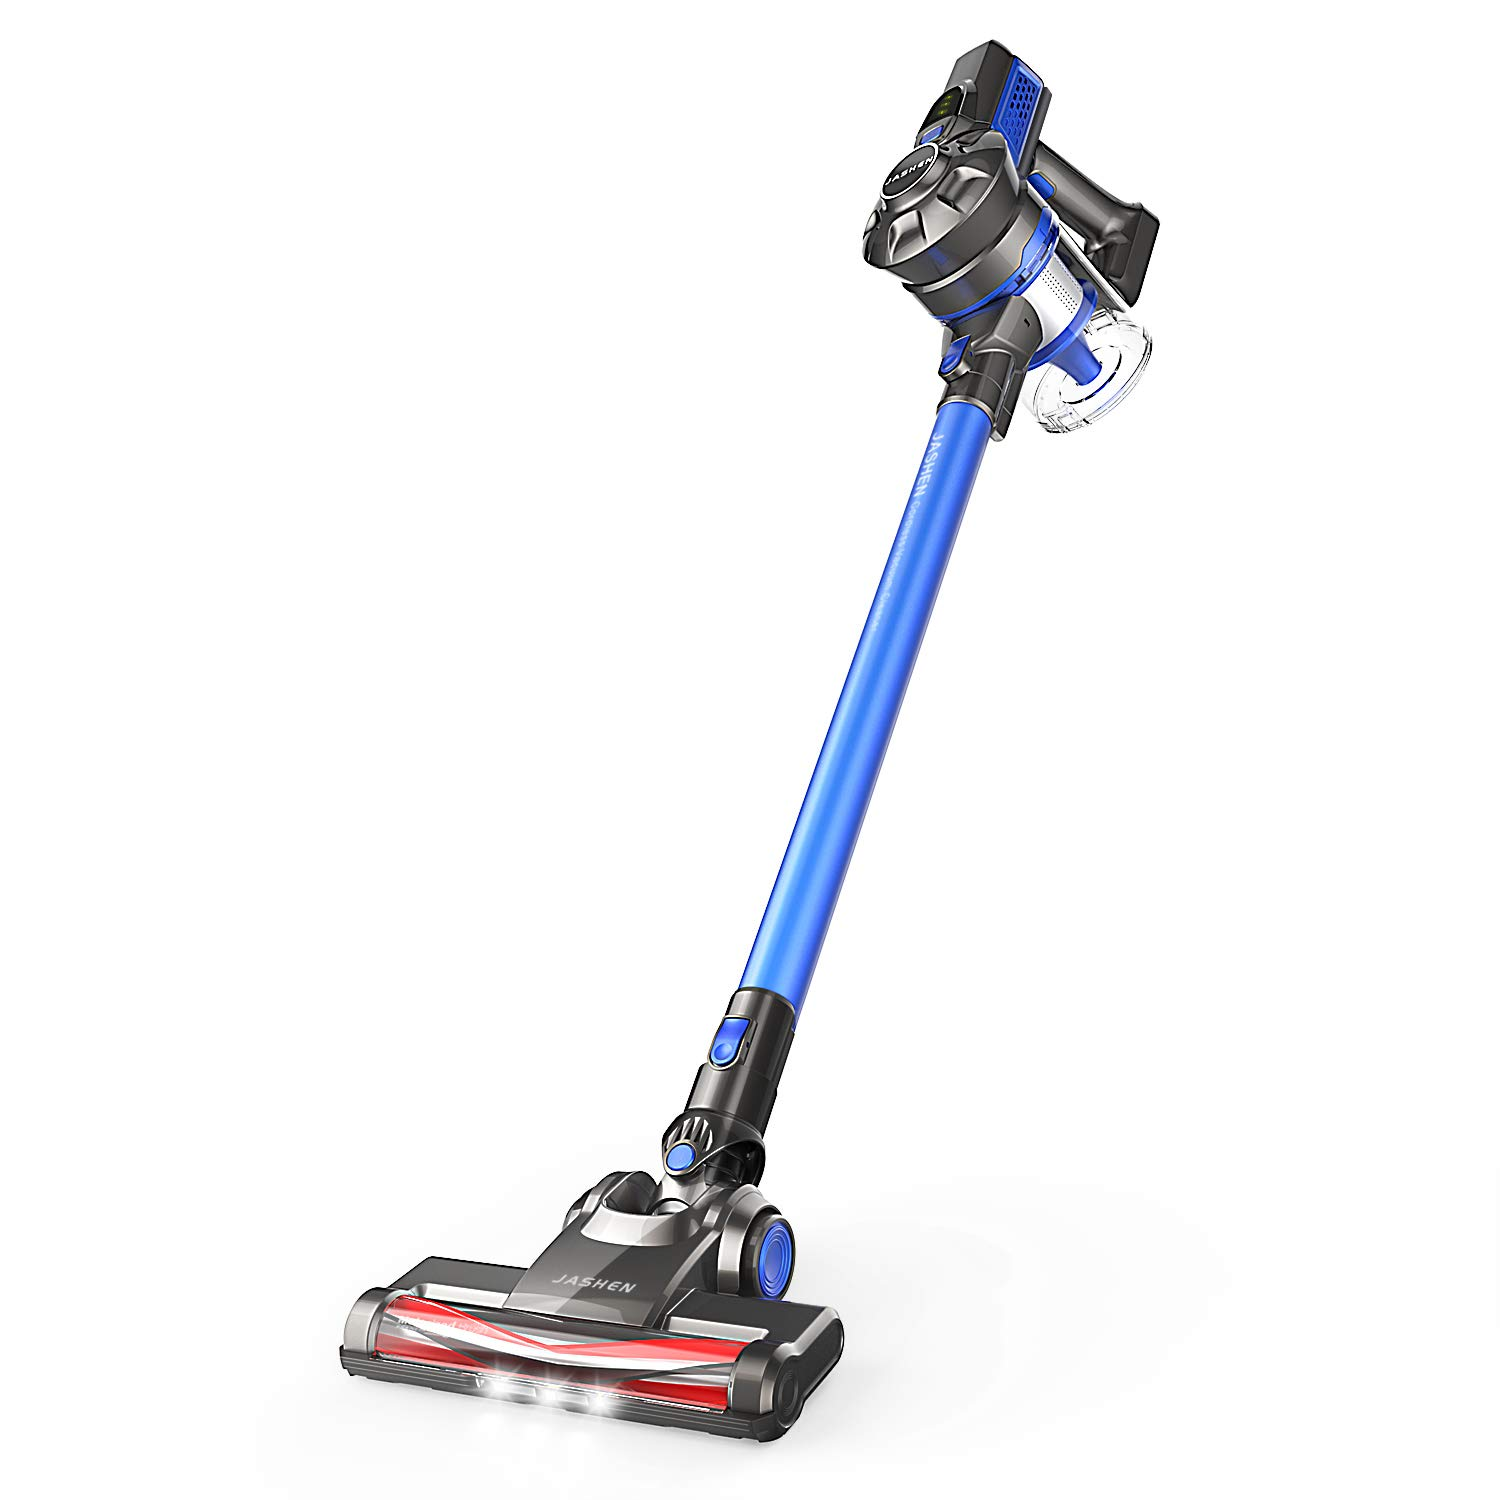 JASHEN Lightweight Cordless Vacuum Cleaner, 180W 12Kpa Powerful Suction 2 in 1 Handheld Stick Vacuum with Rechargeable Battery and LED Lights for Hardwood Floors, Carpets, Rugs and Pet Hair Cars